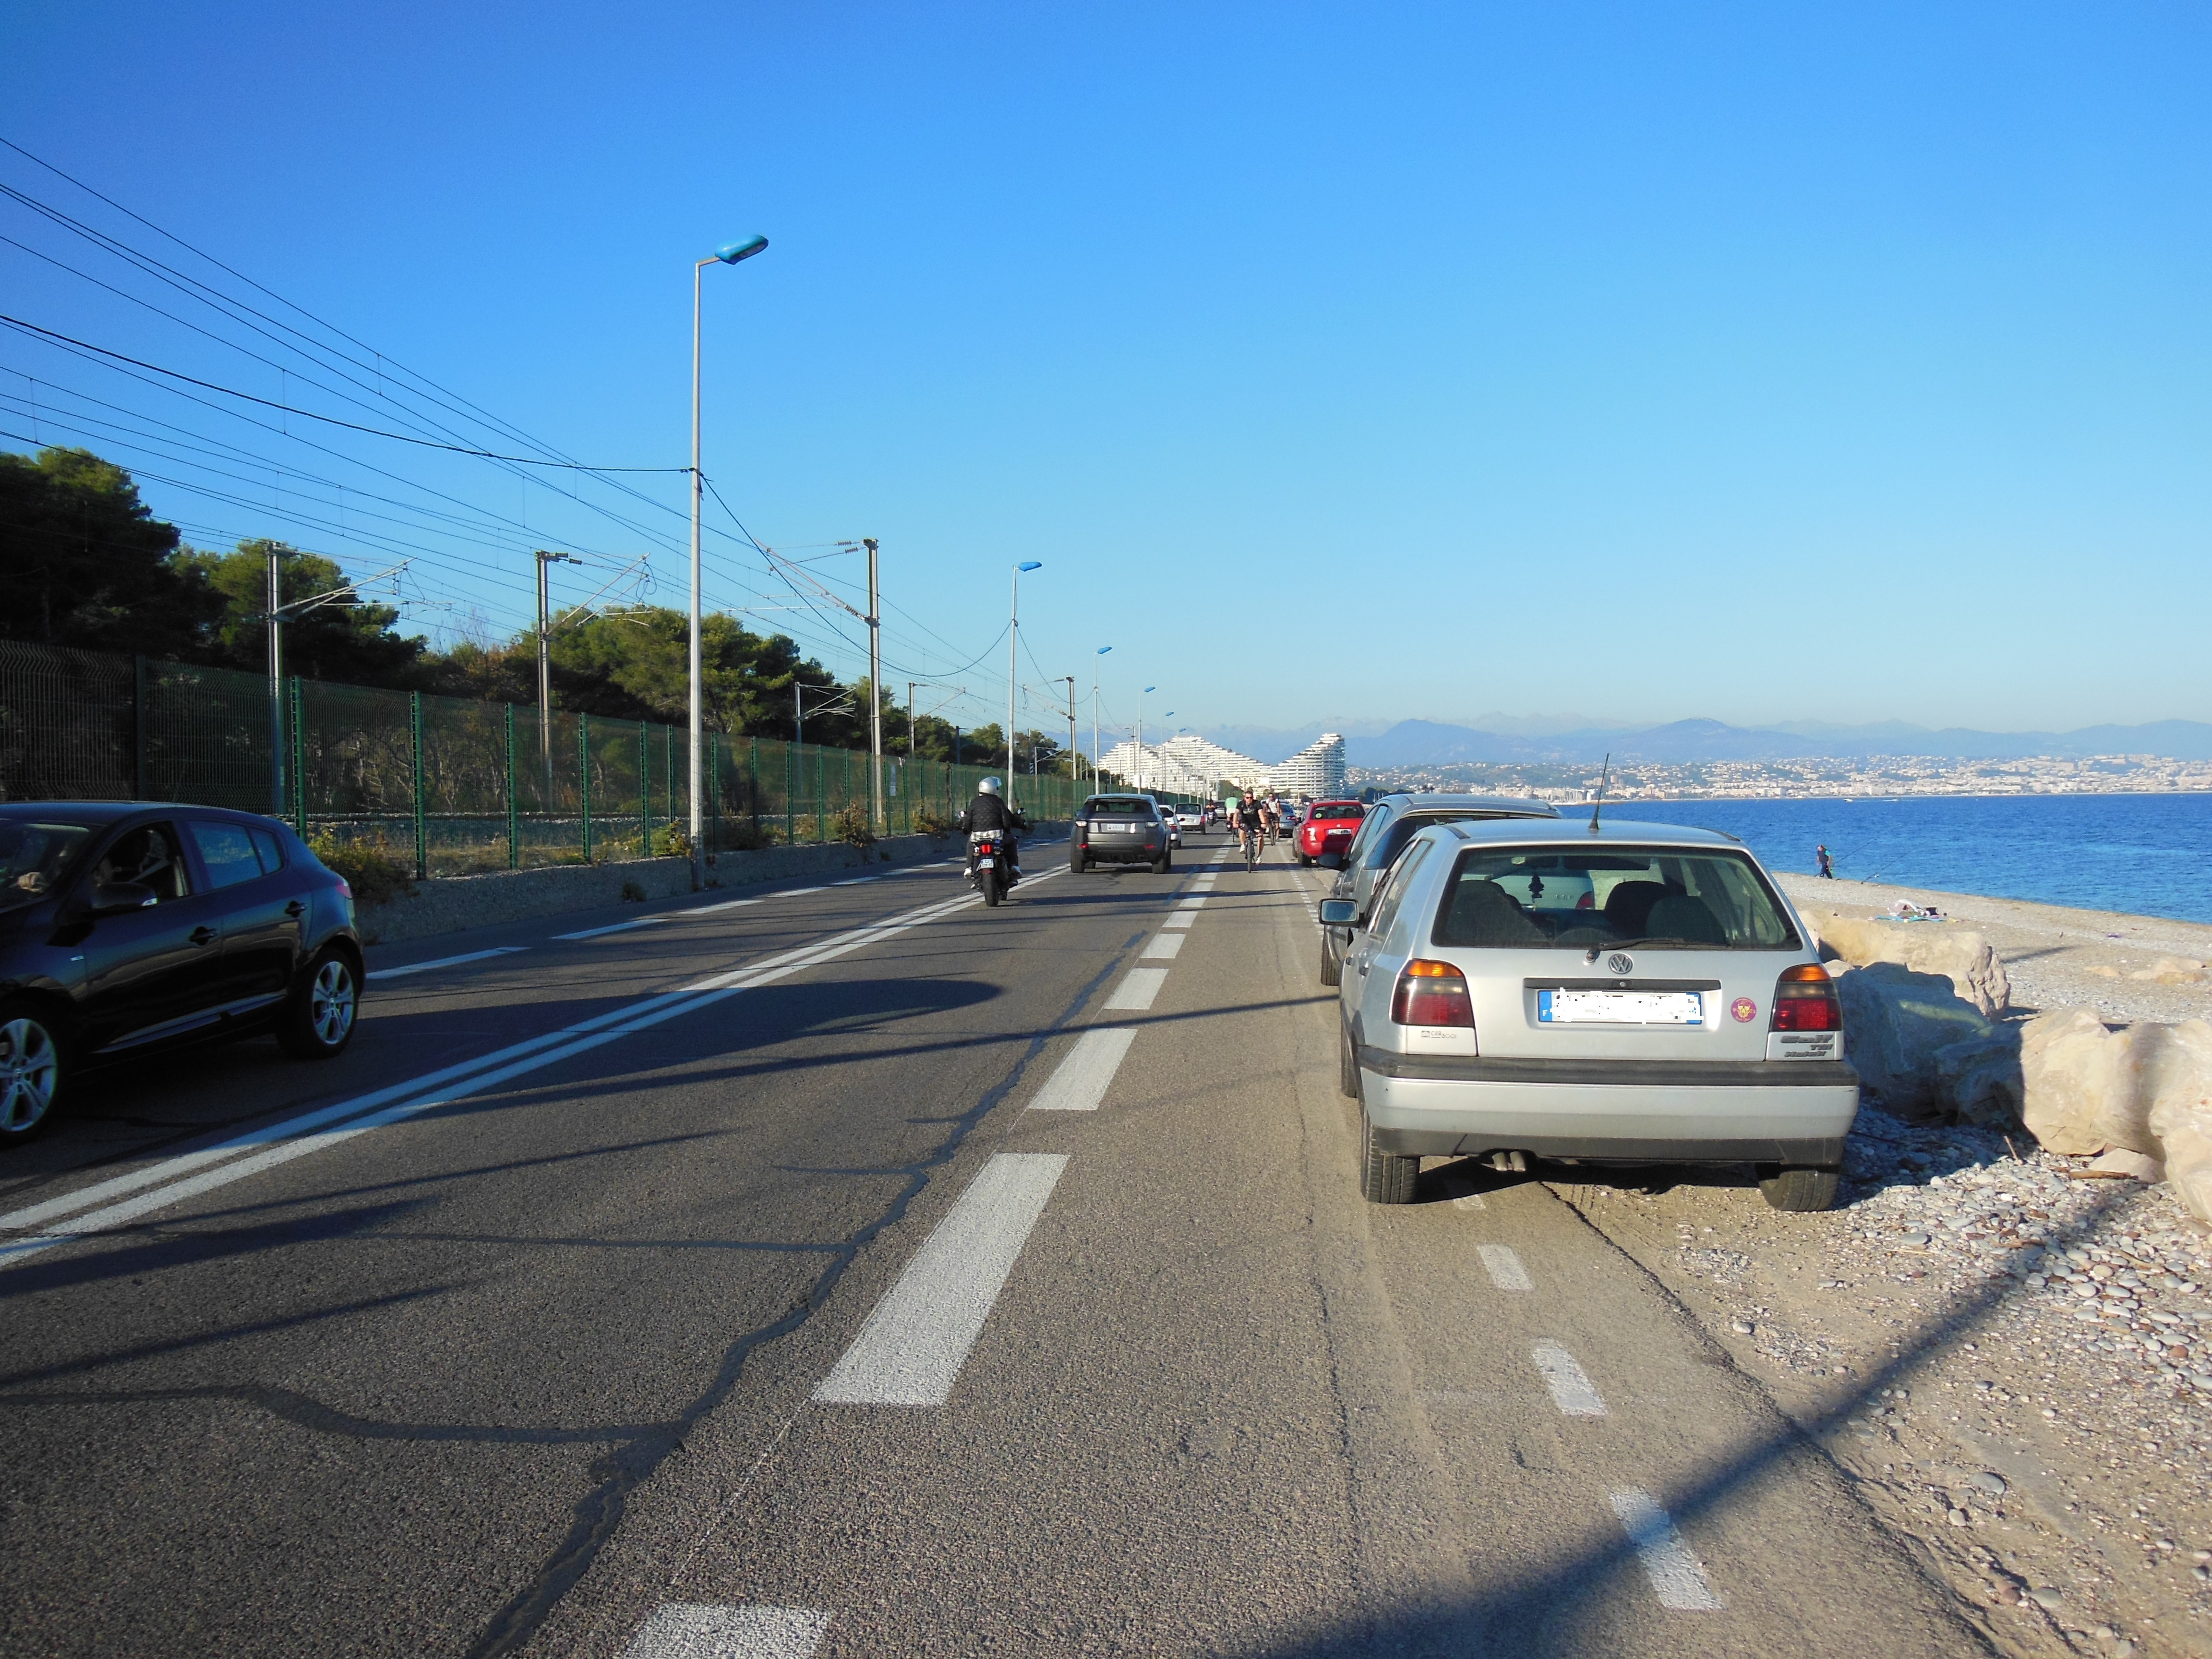 Bandes cyclables